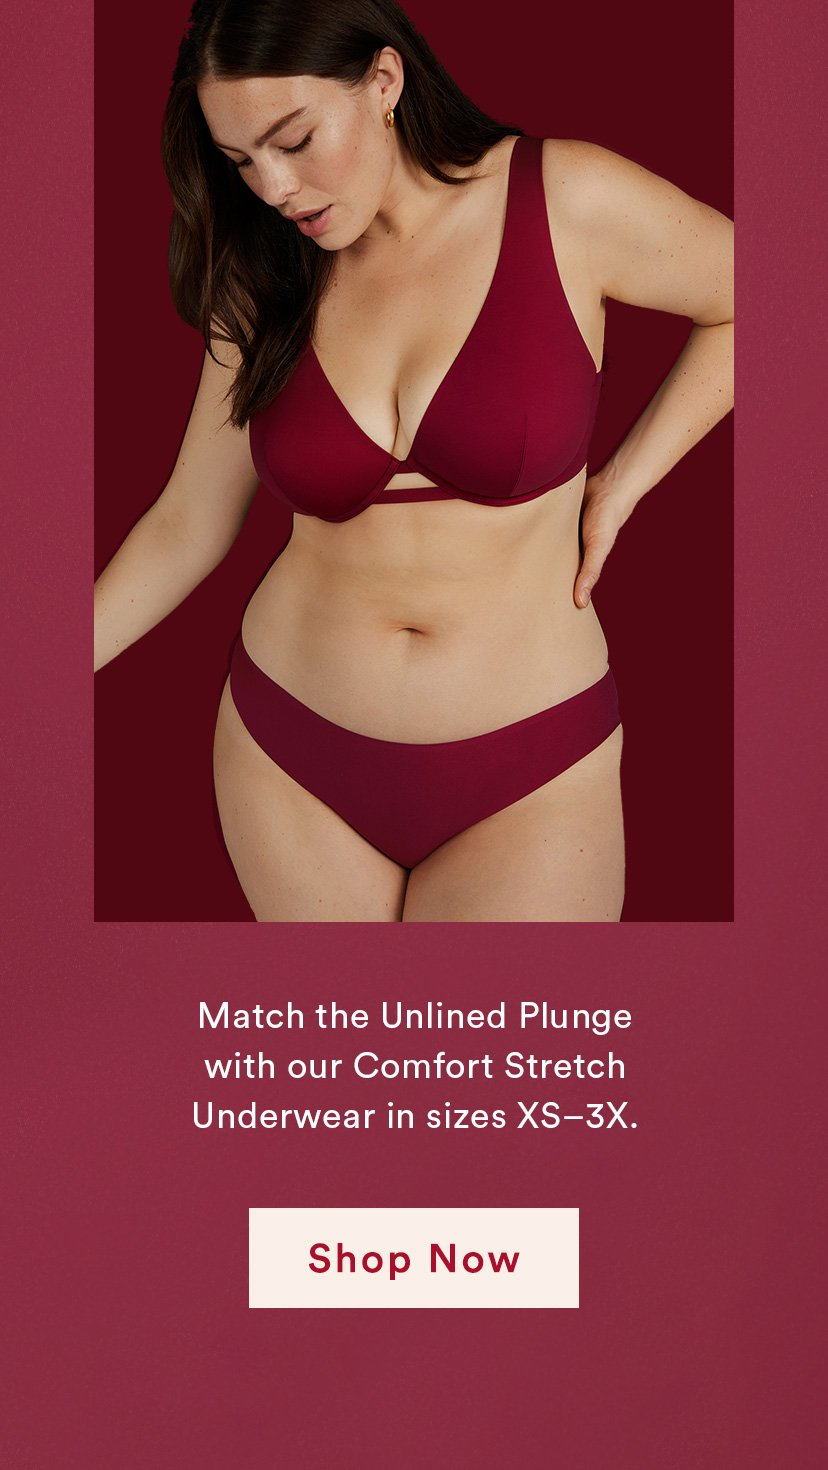 Match the Unlined Plunge